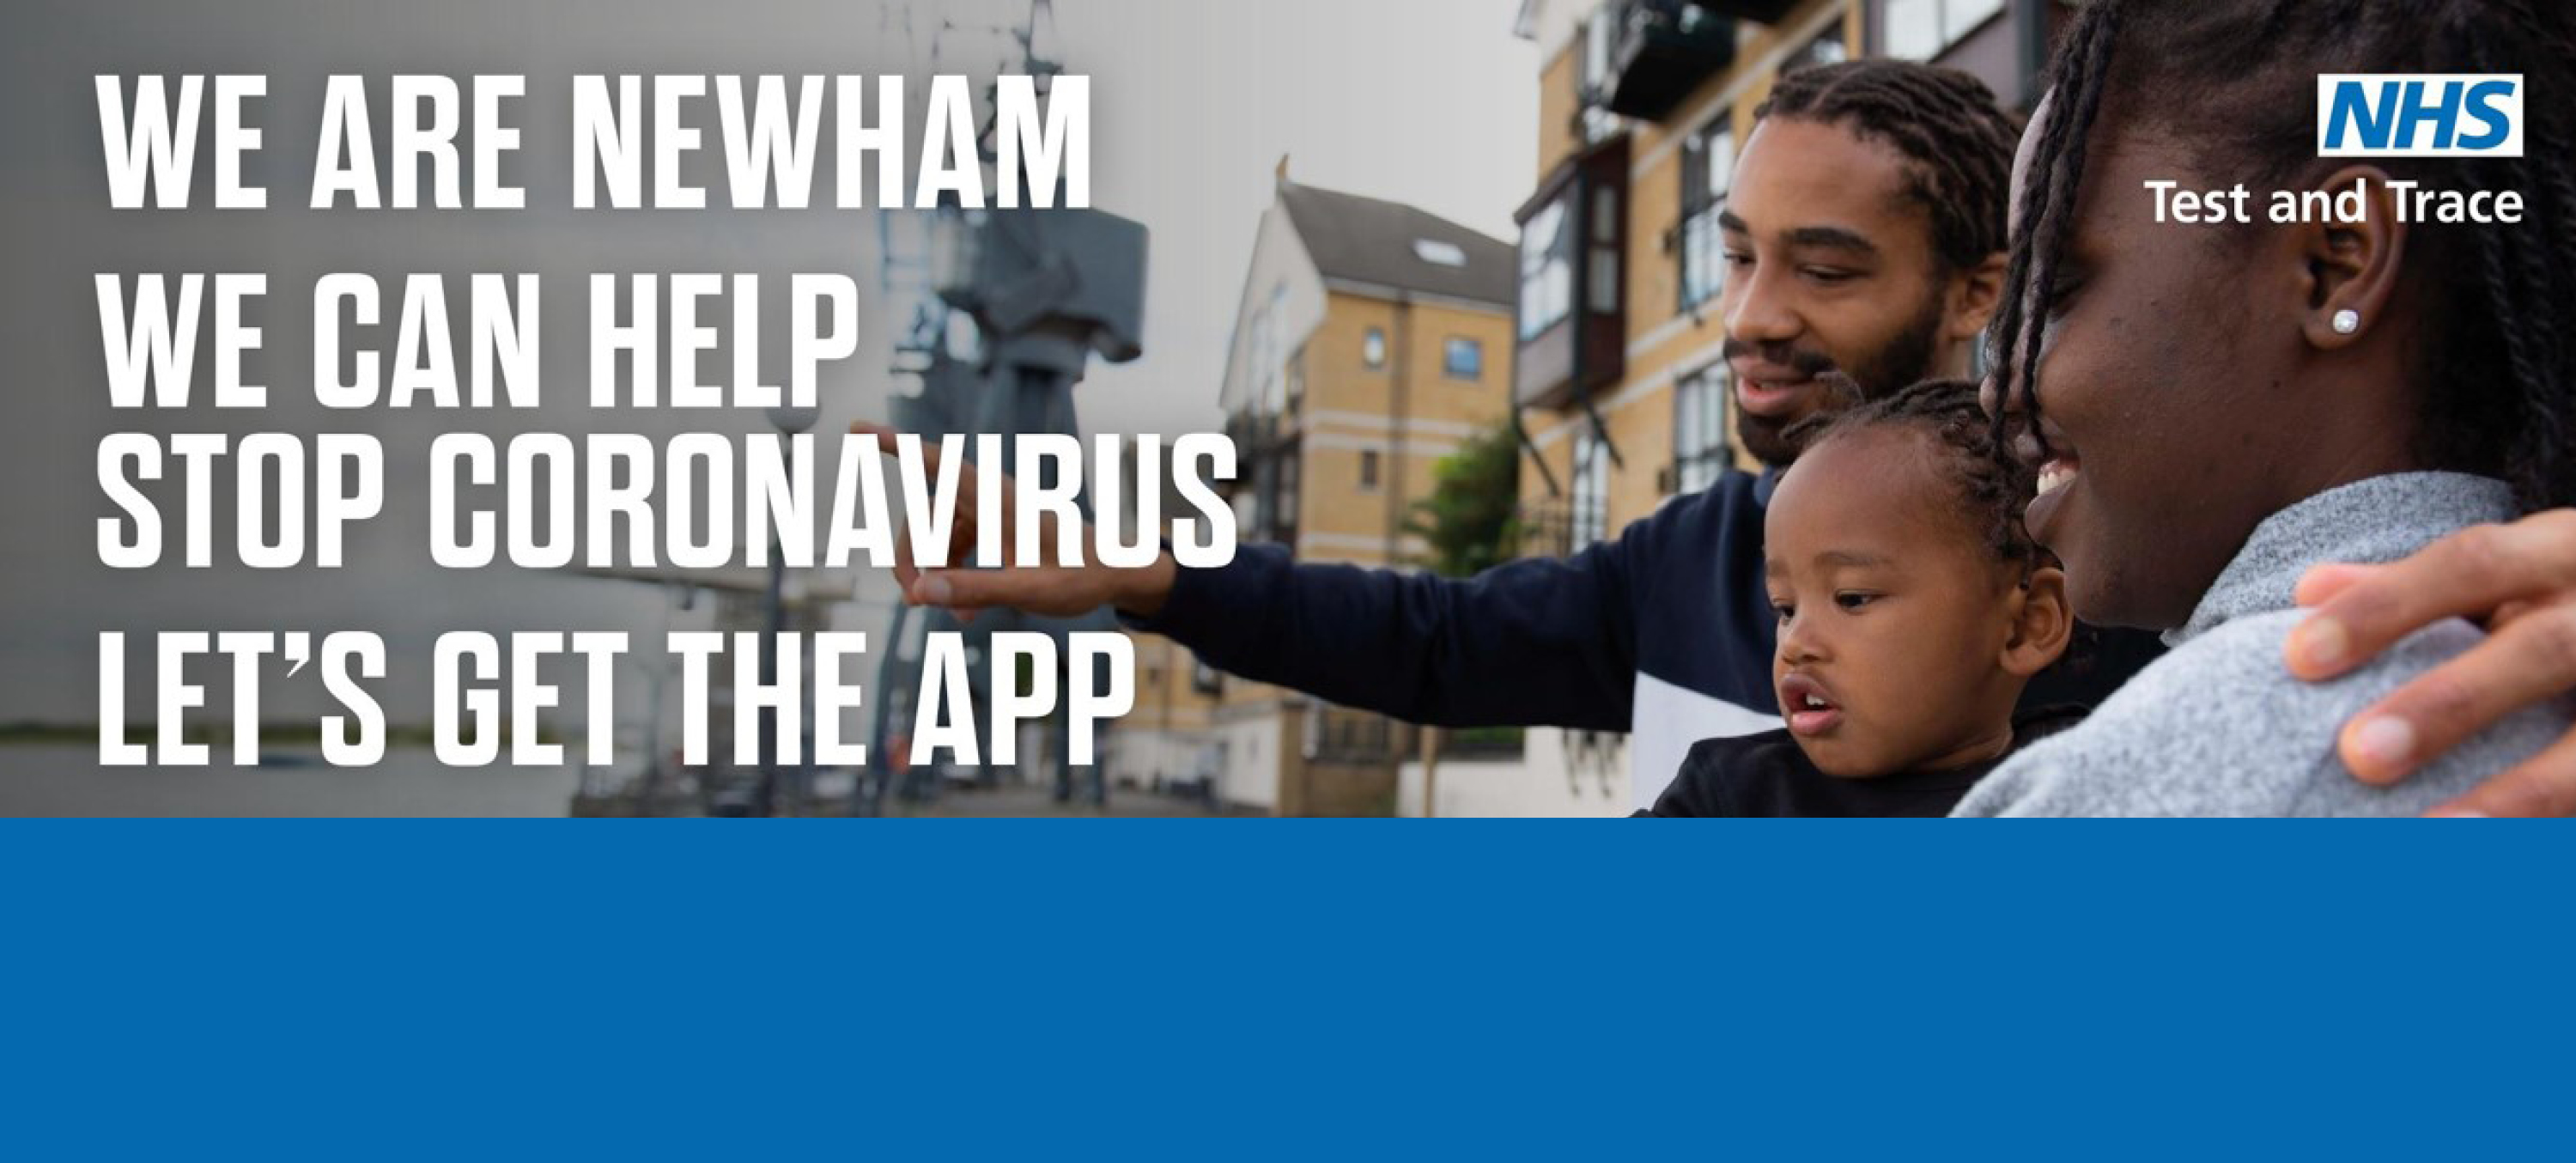 We are Newham. We can help stop Coronavirus. Let's get the app.